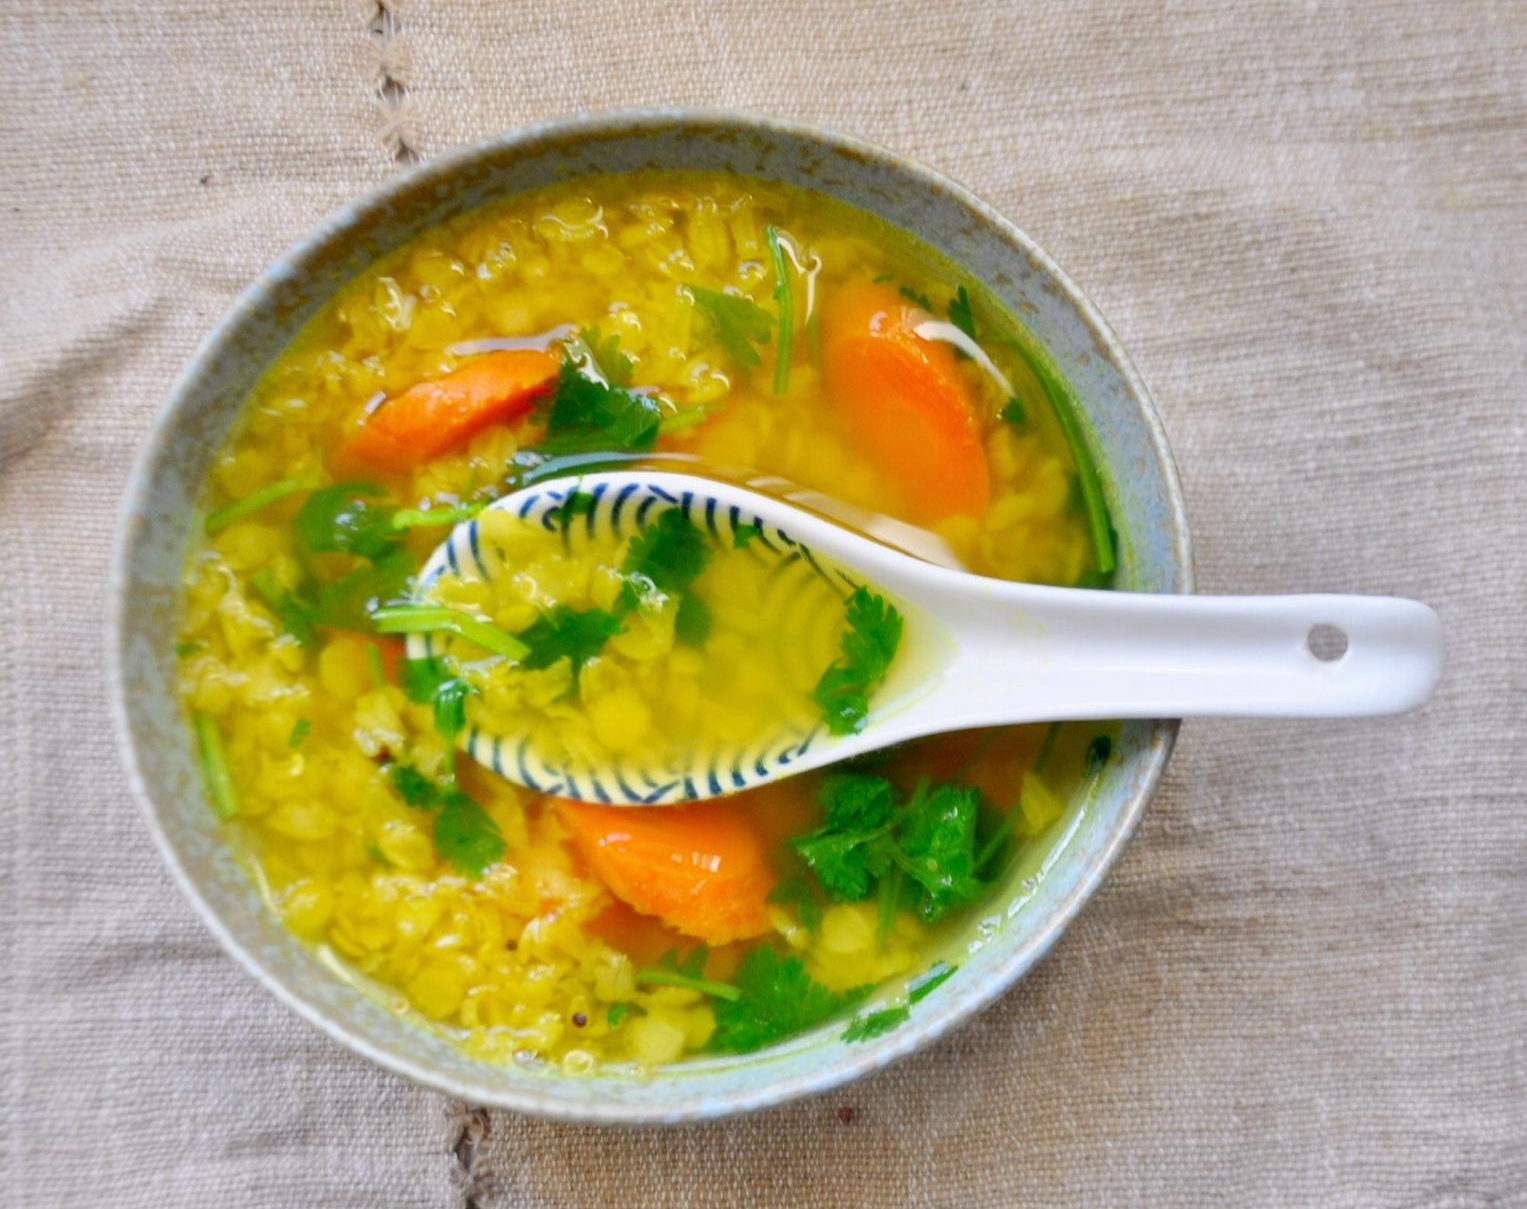 Ayurveda cooking and plant based food workshops - Find out about upcoming events and cooking workshops here!